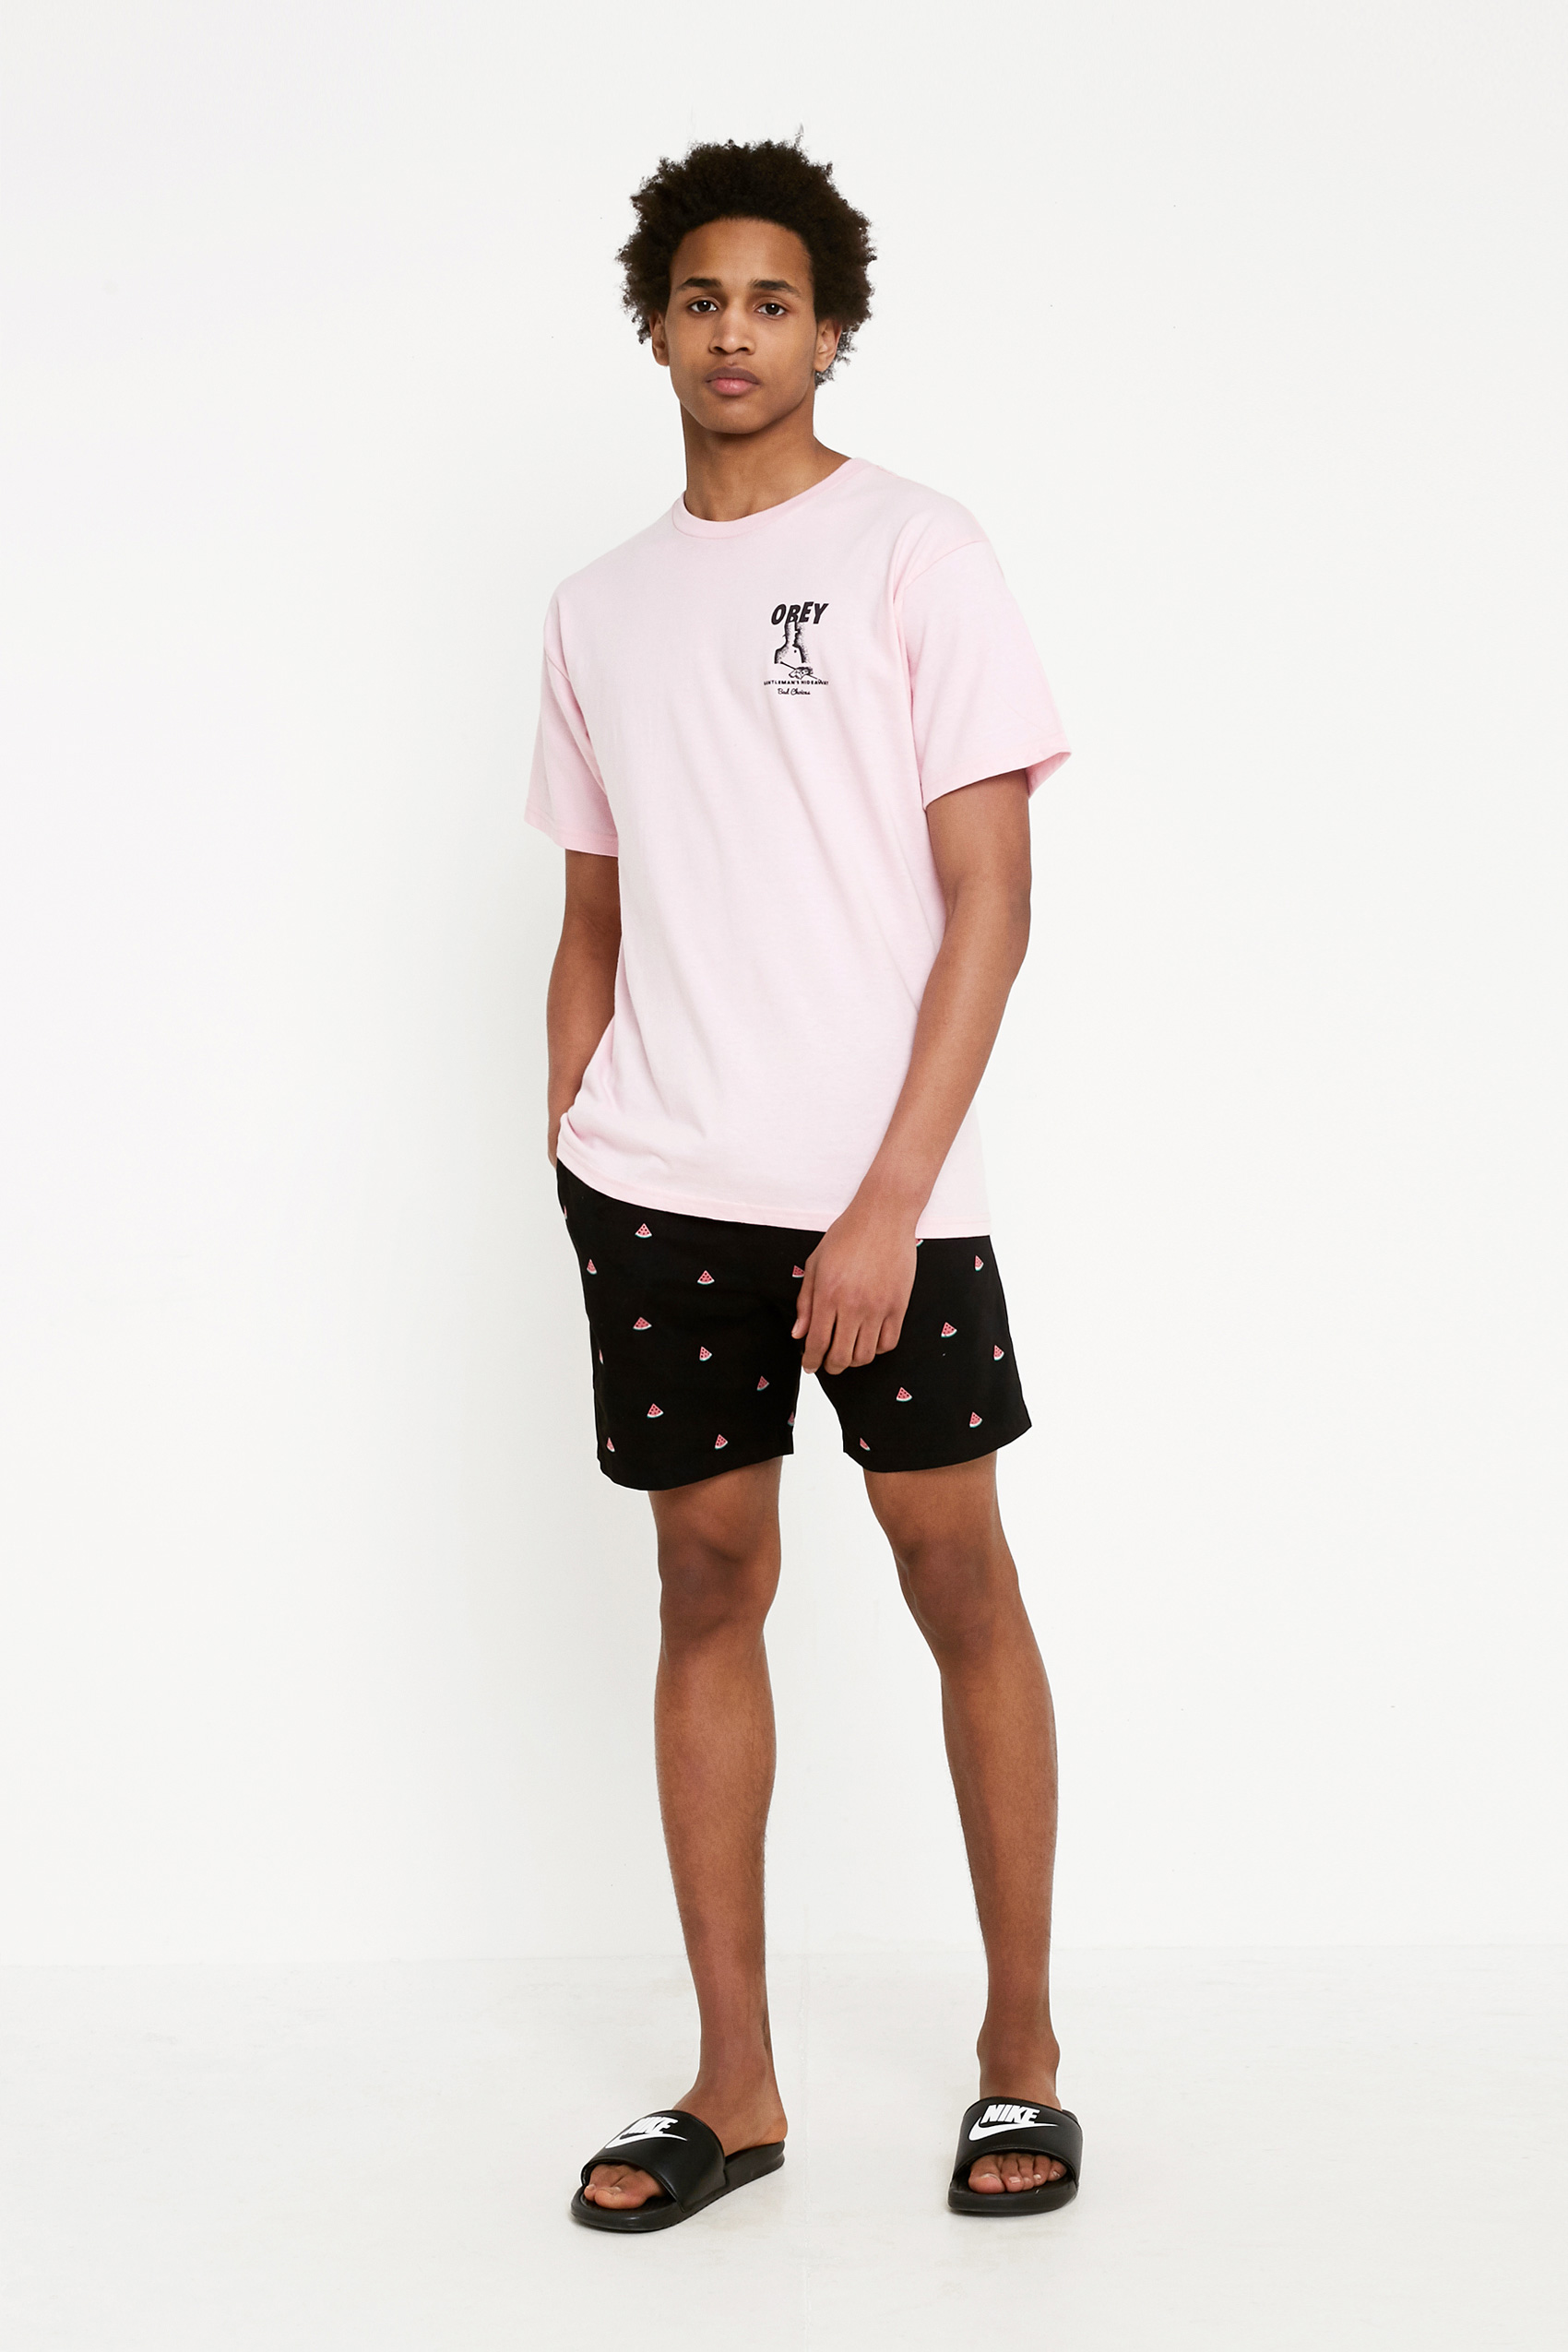 Urban Outfitters swim shorts £32 or €45 (4).jpg